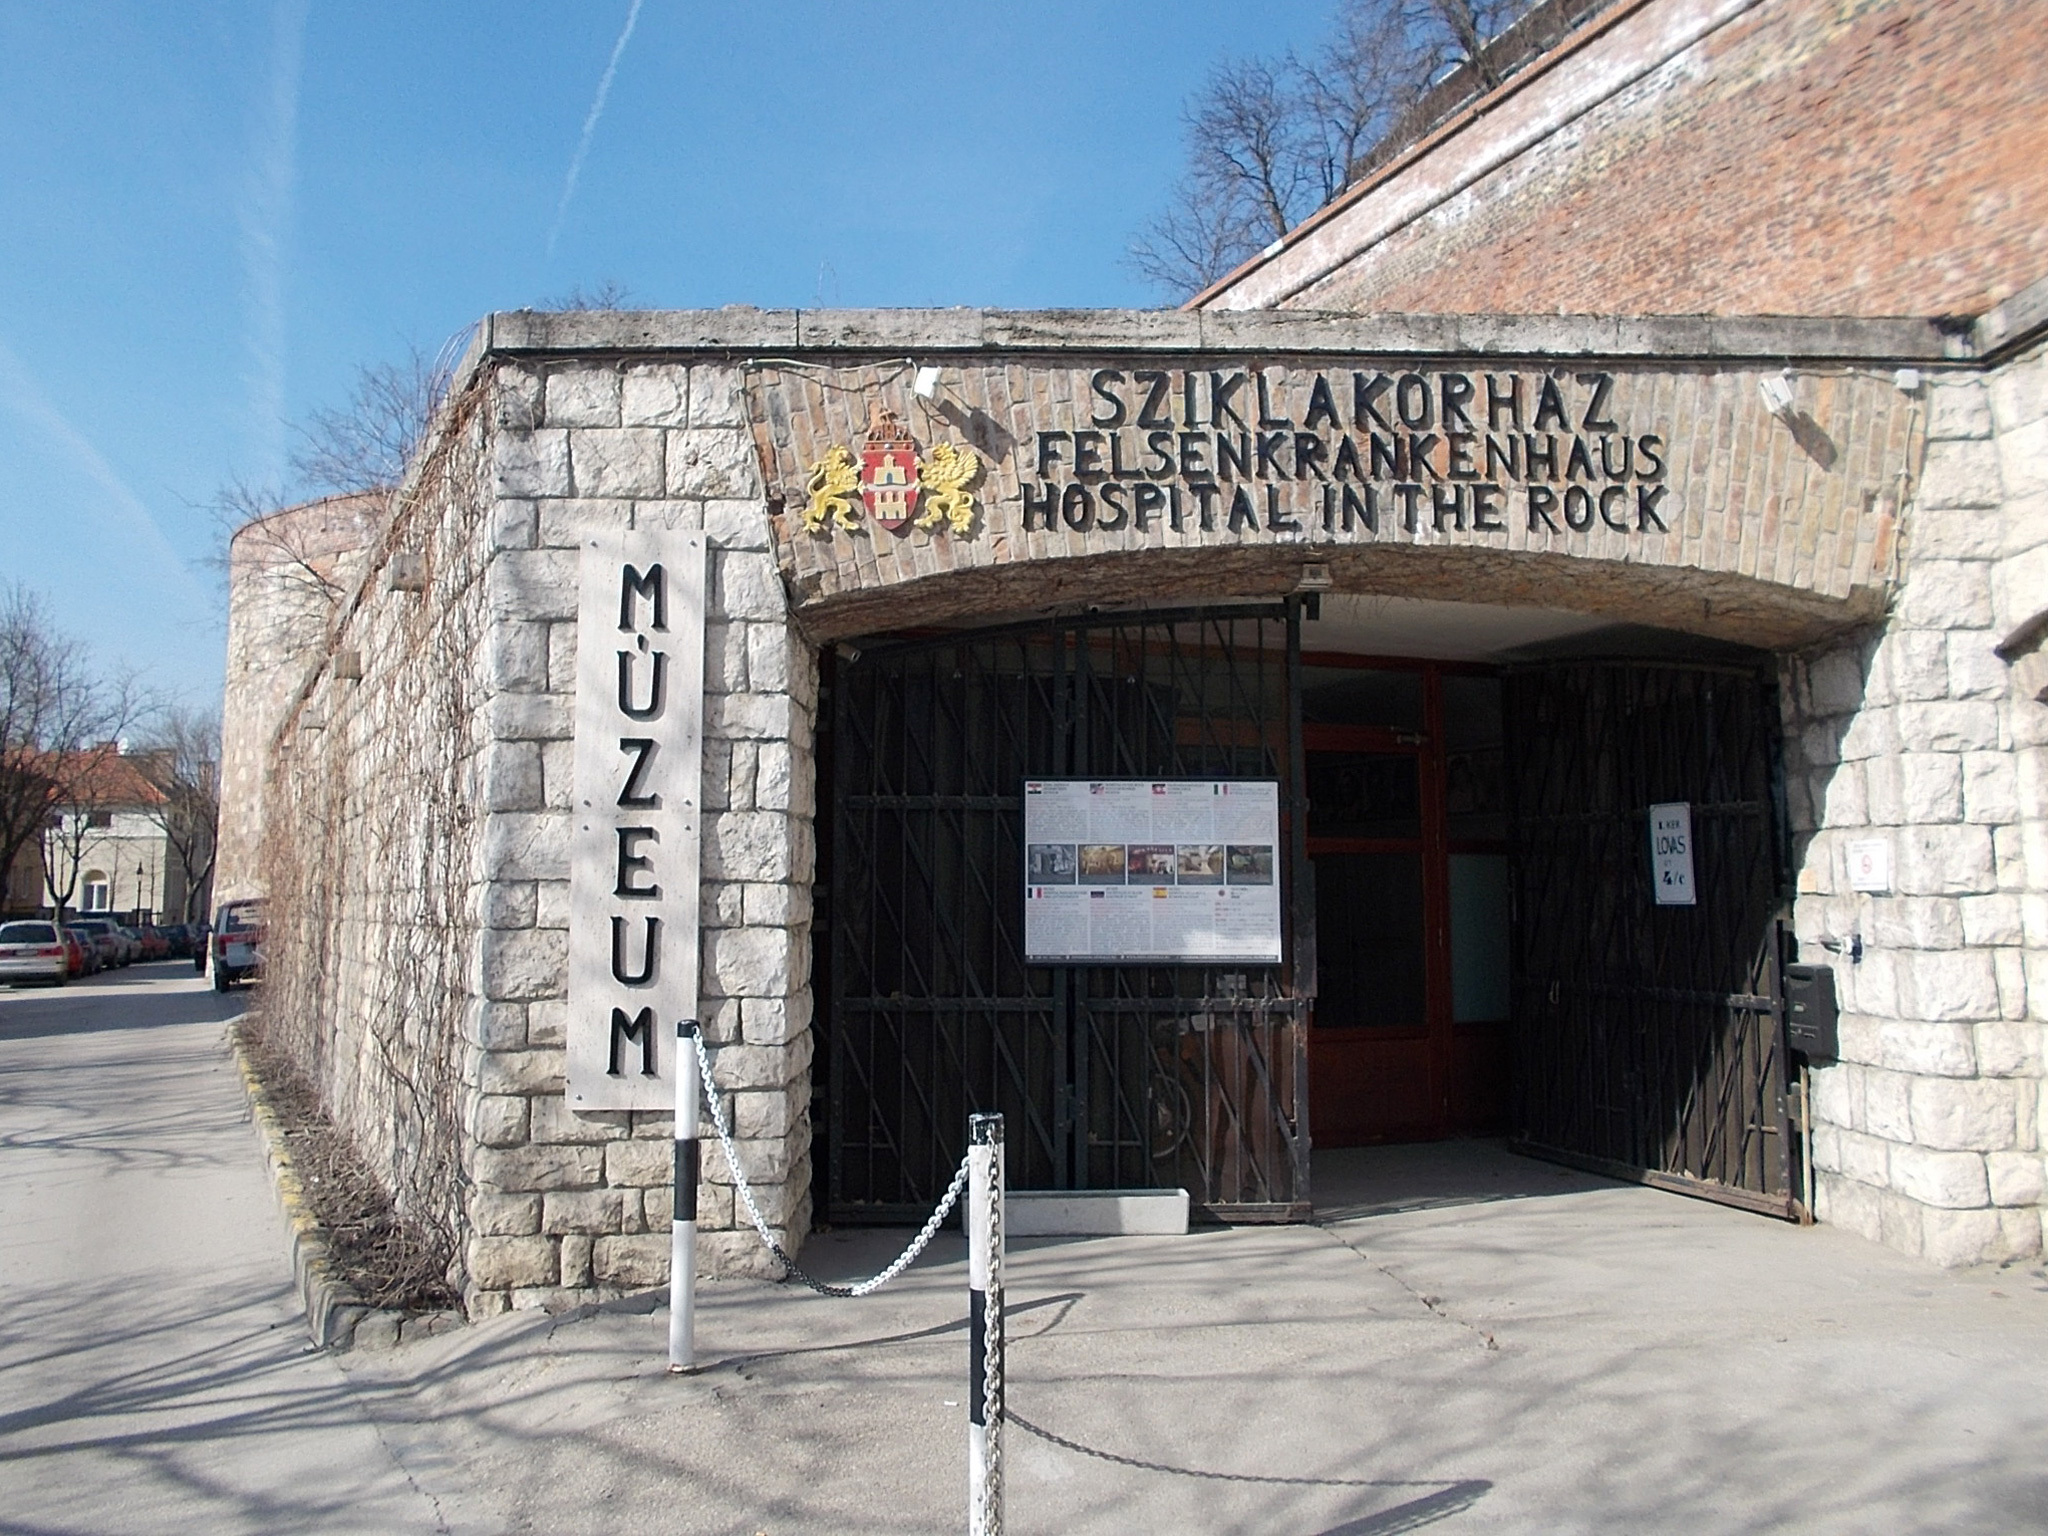 The entrance to the Hospital in the Rock in Budapest